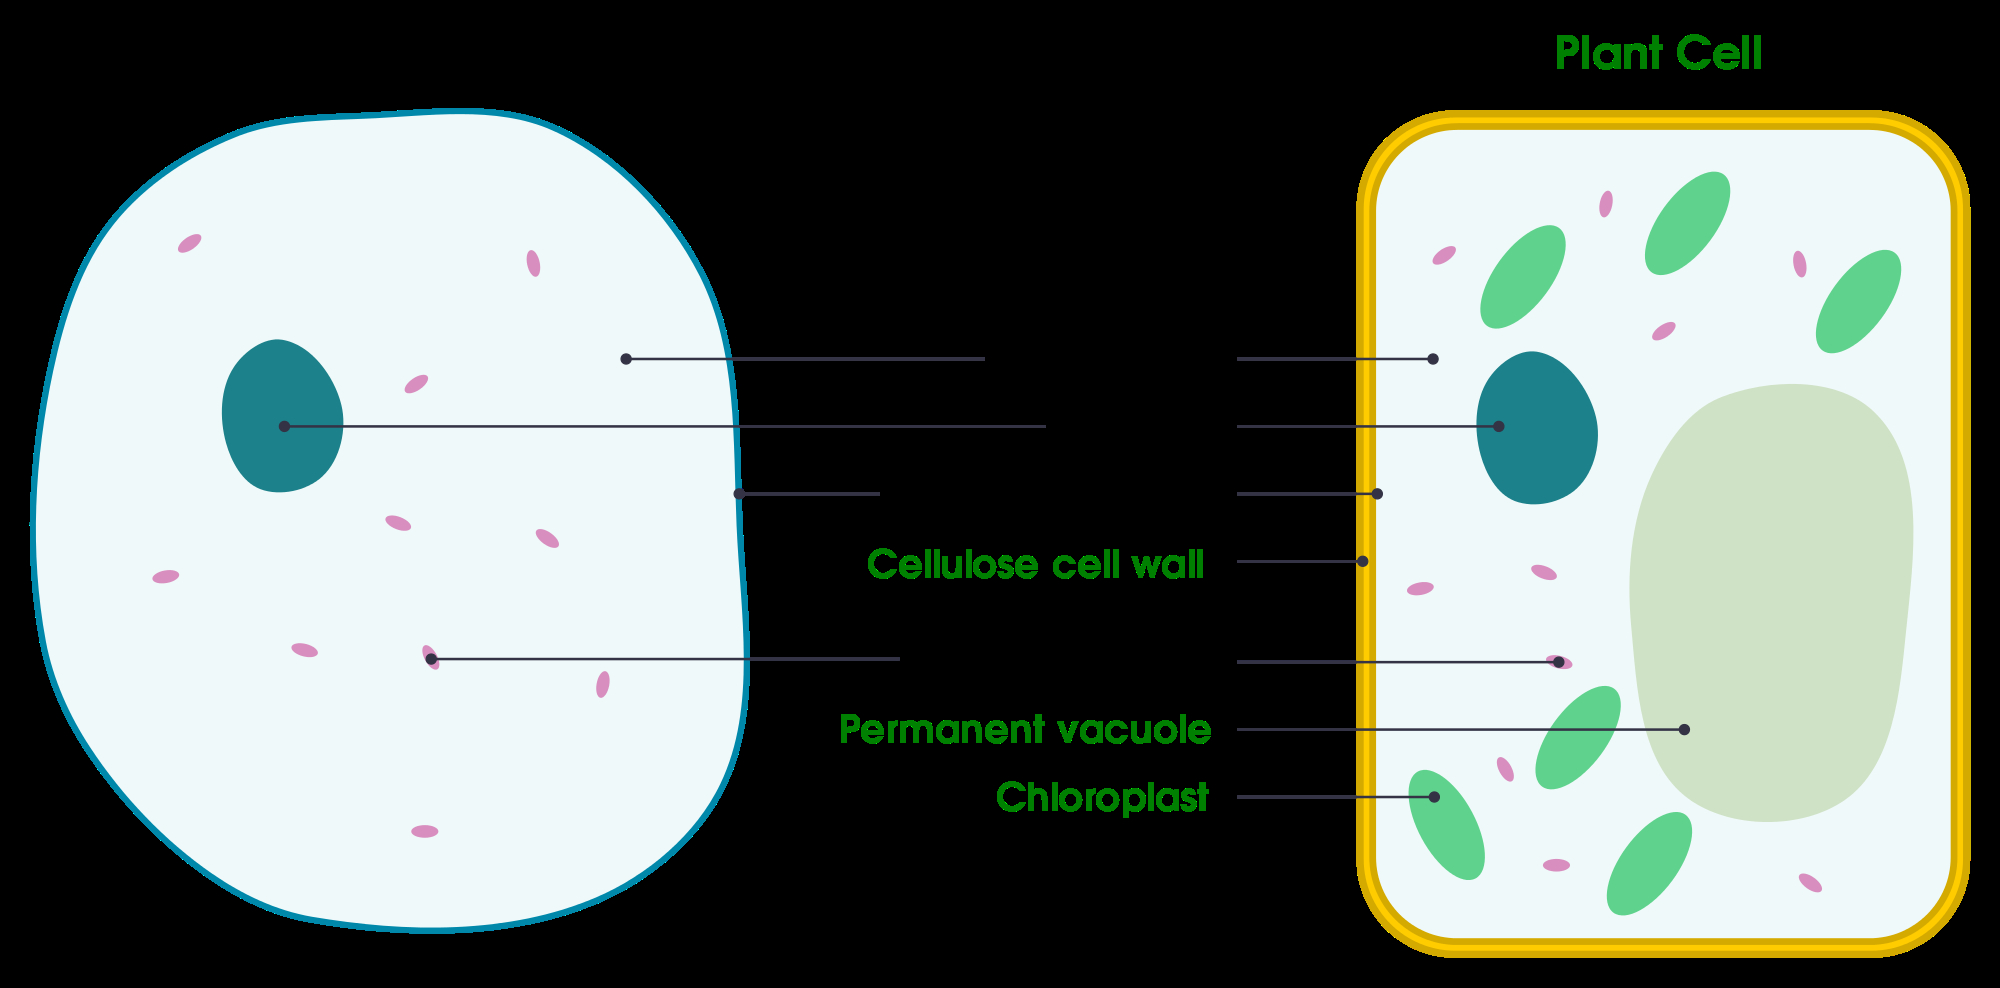 A Labeled Diagram Of The Plant Cell And Functions Of Its Manual Guide